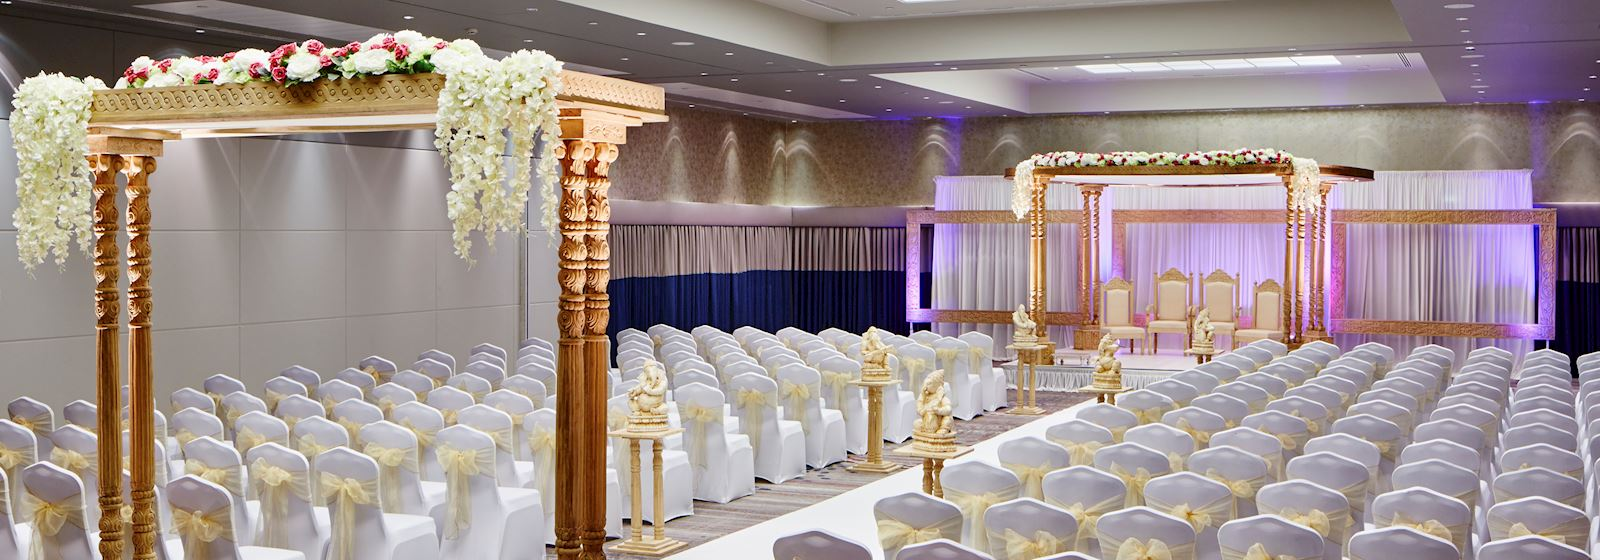 wedding party spaces leicester